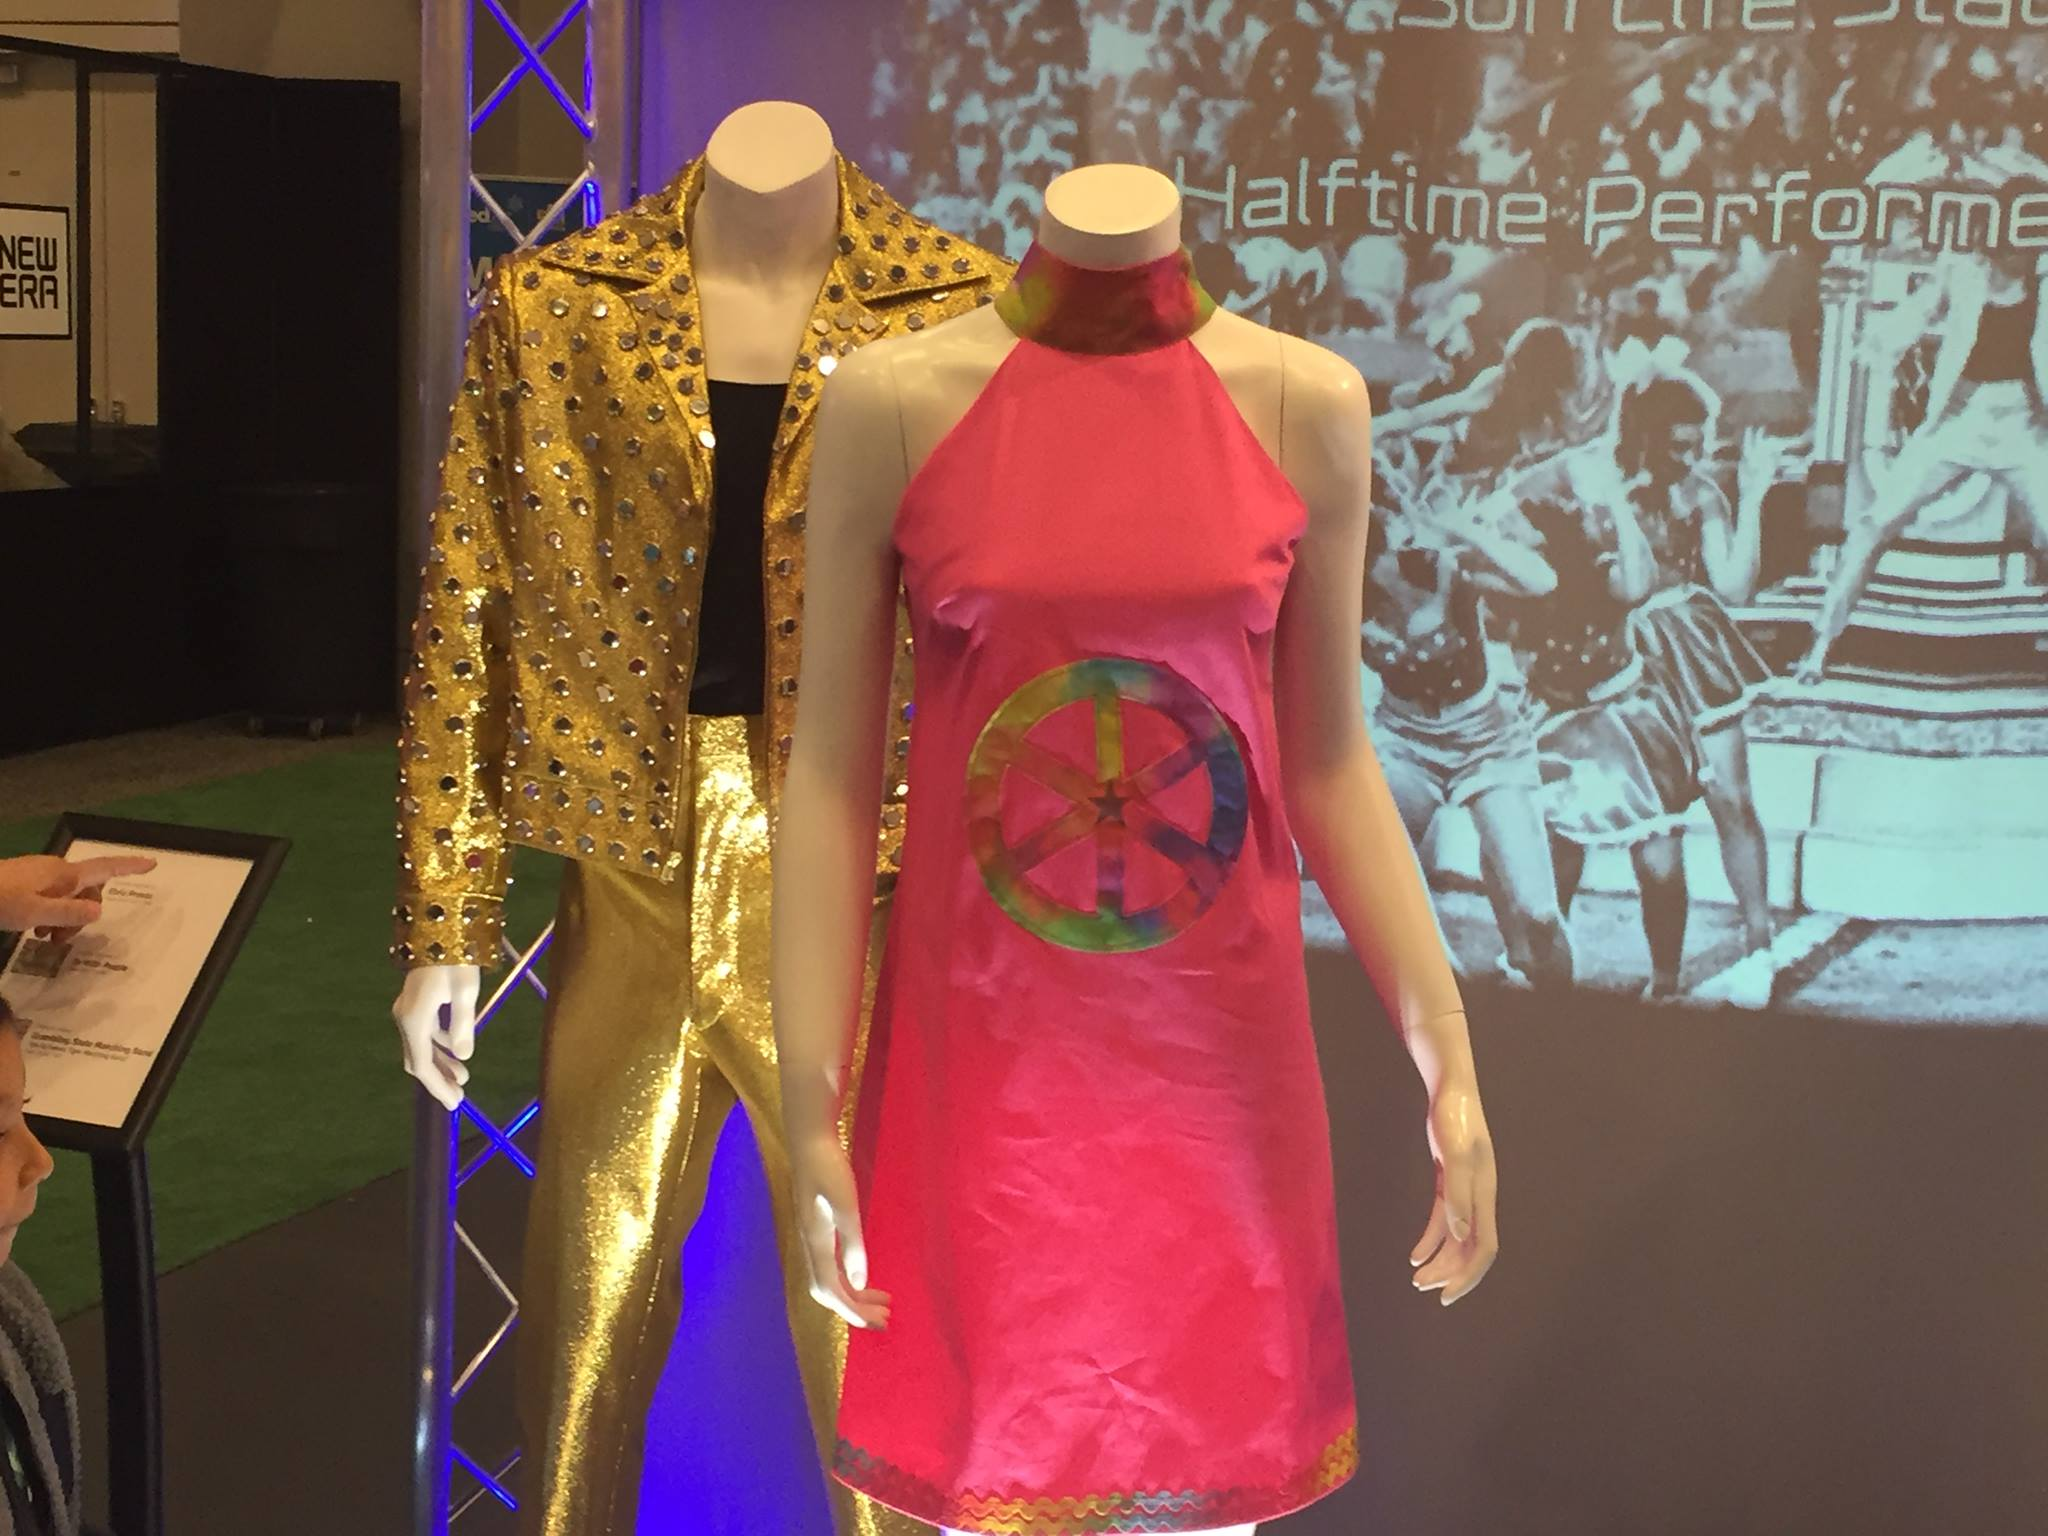 <div class='meta'><div class='origin-logo' data-origin='none'></div><span class='caption-text' data-credit='KGO-TV'>Outfits inspired by Super Bowl halftime acts &#34;Elvis Presto&#34; and &#34;Up With People,&#34; as seen at NFL Experience, Sunday, January 31, 2016.</span></div>